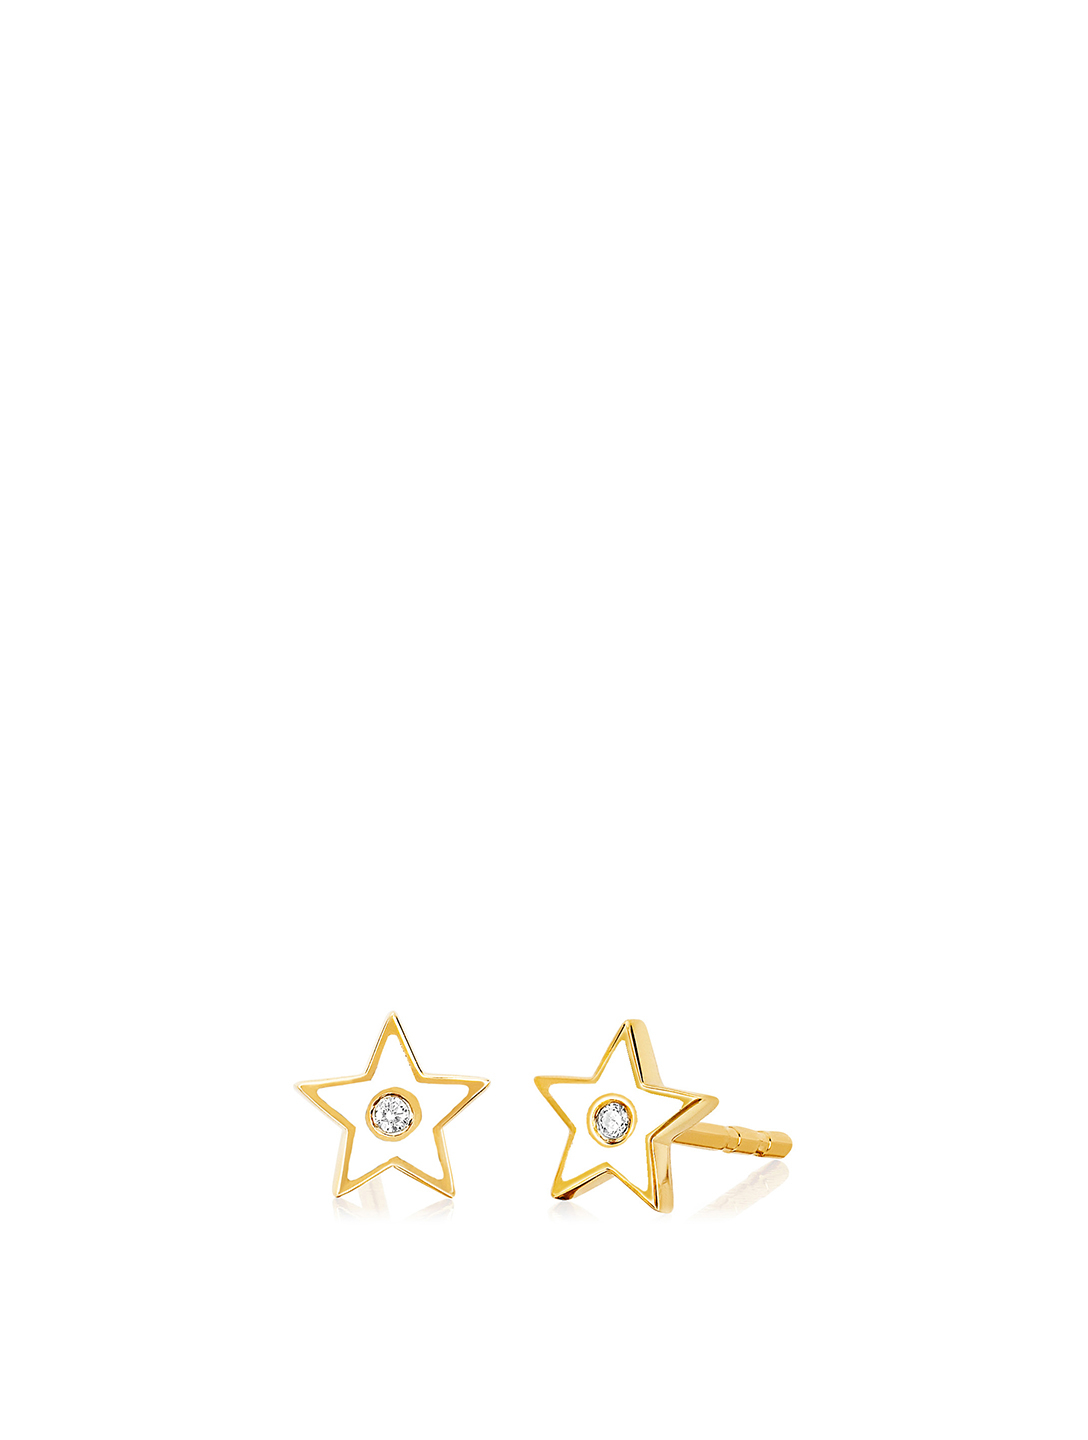 EF COLLECTION 14K Gold Enamel Star Stud Earrings With Diamonds Women's Metallic